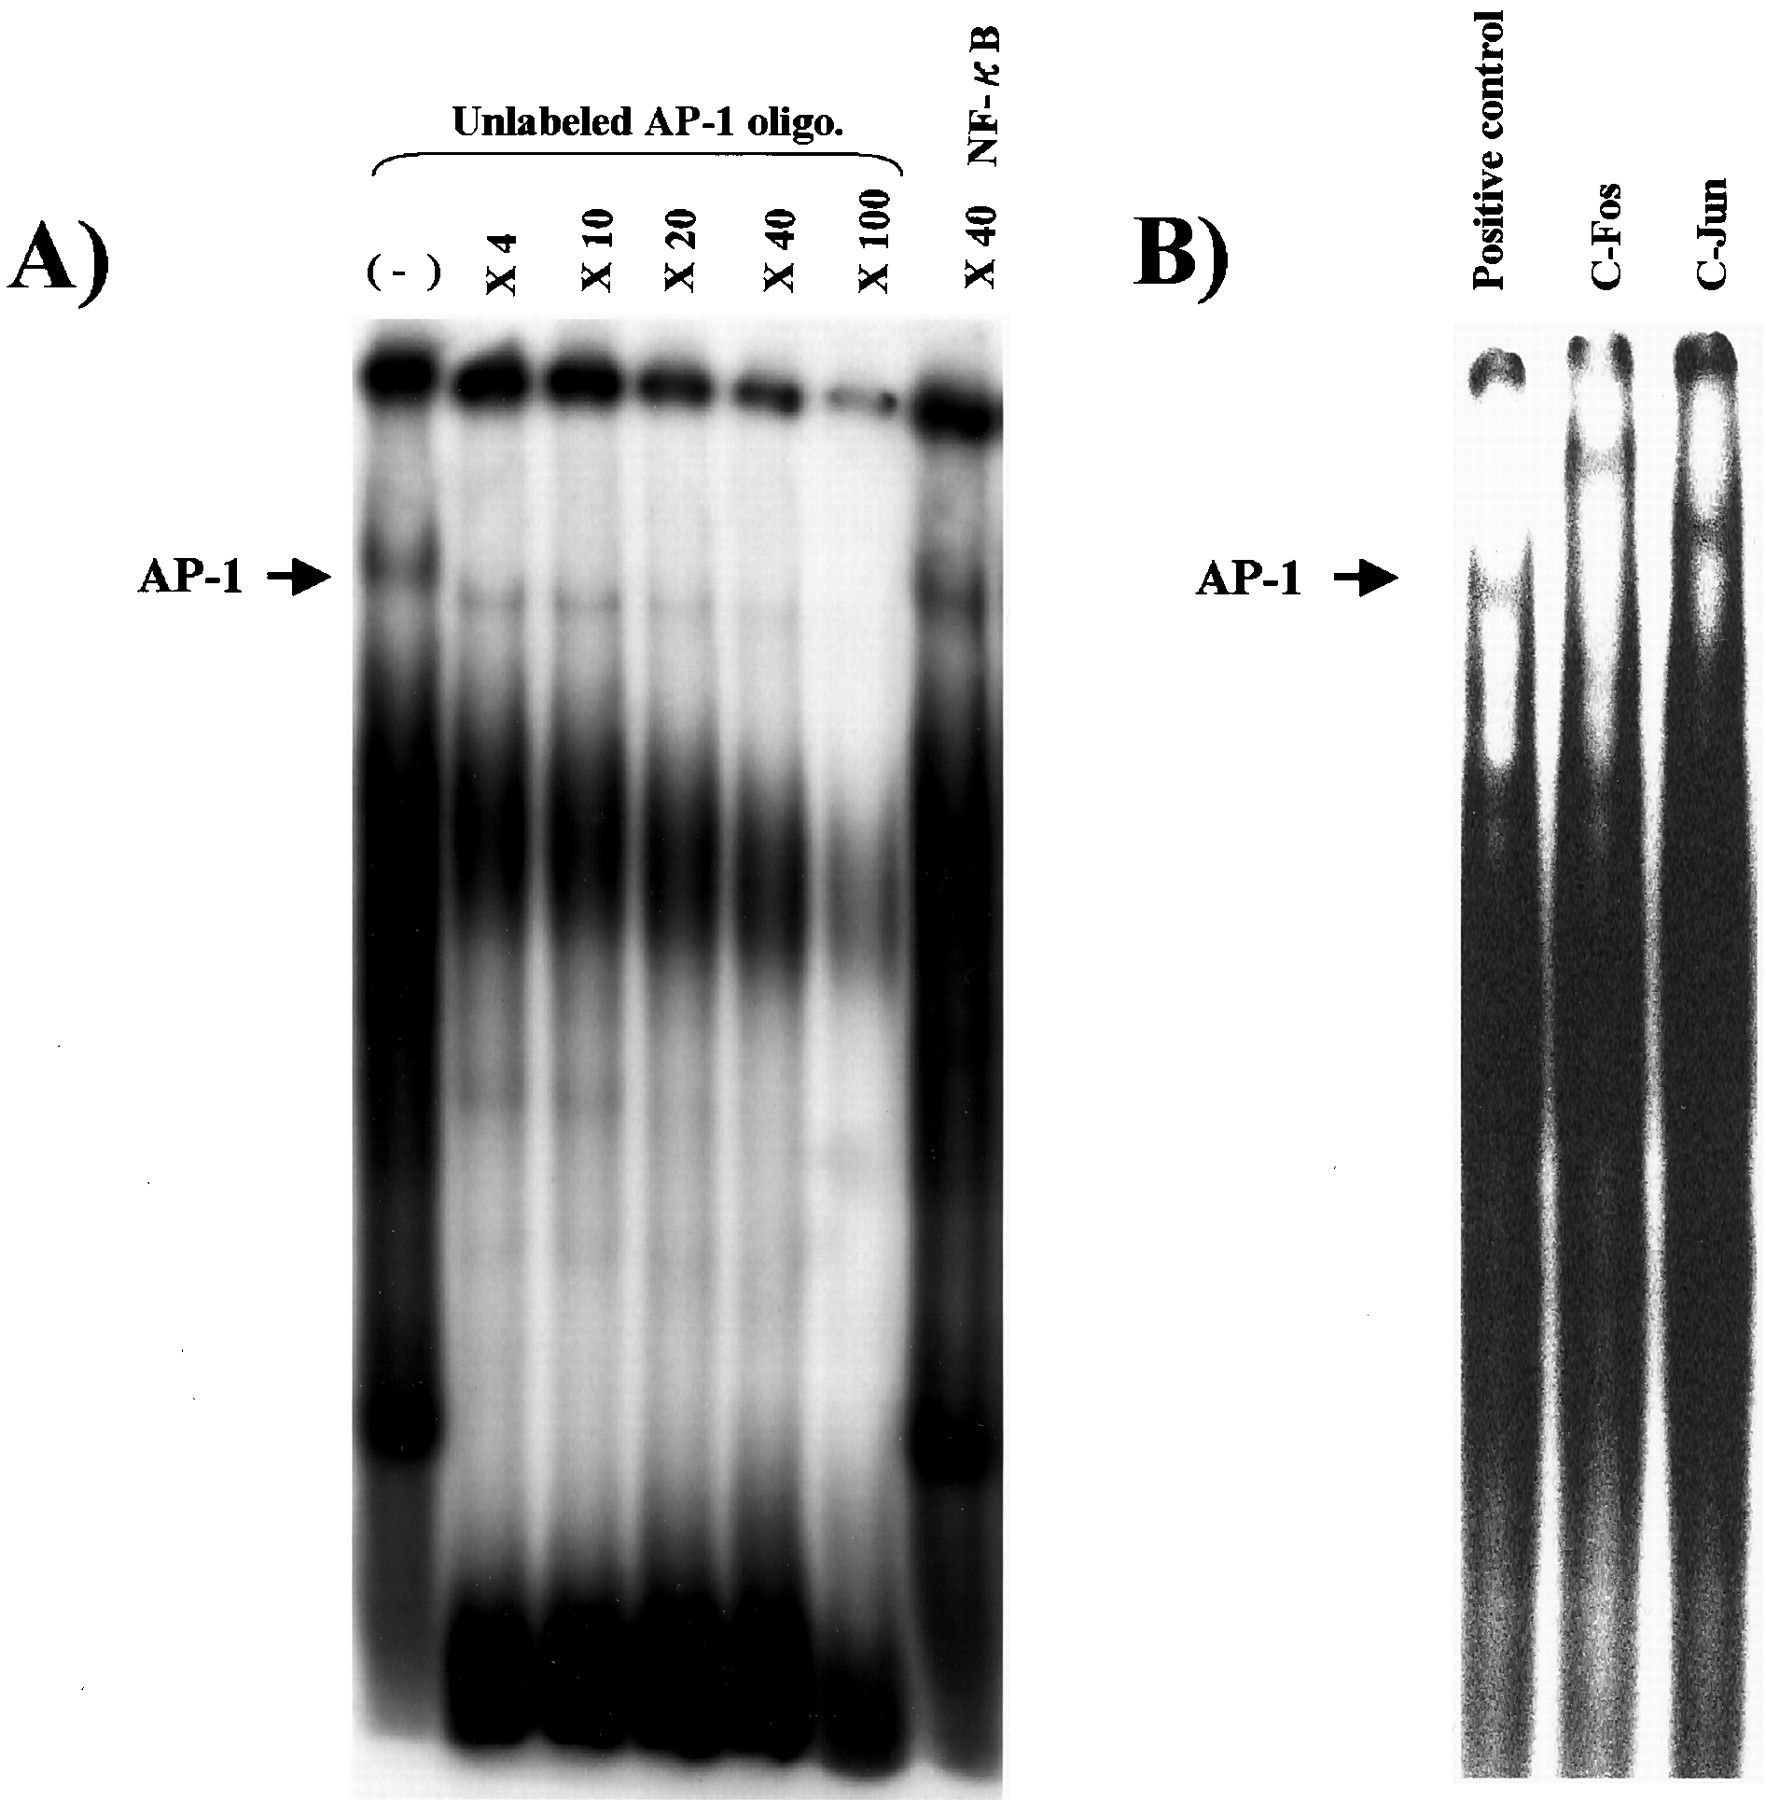 Administration Of A Decoy Against The Activator Protein-1